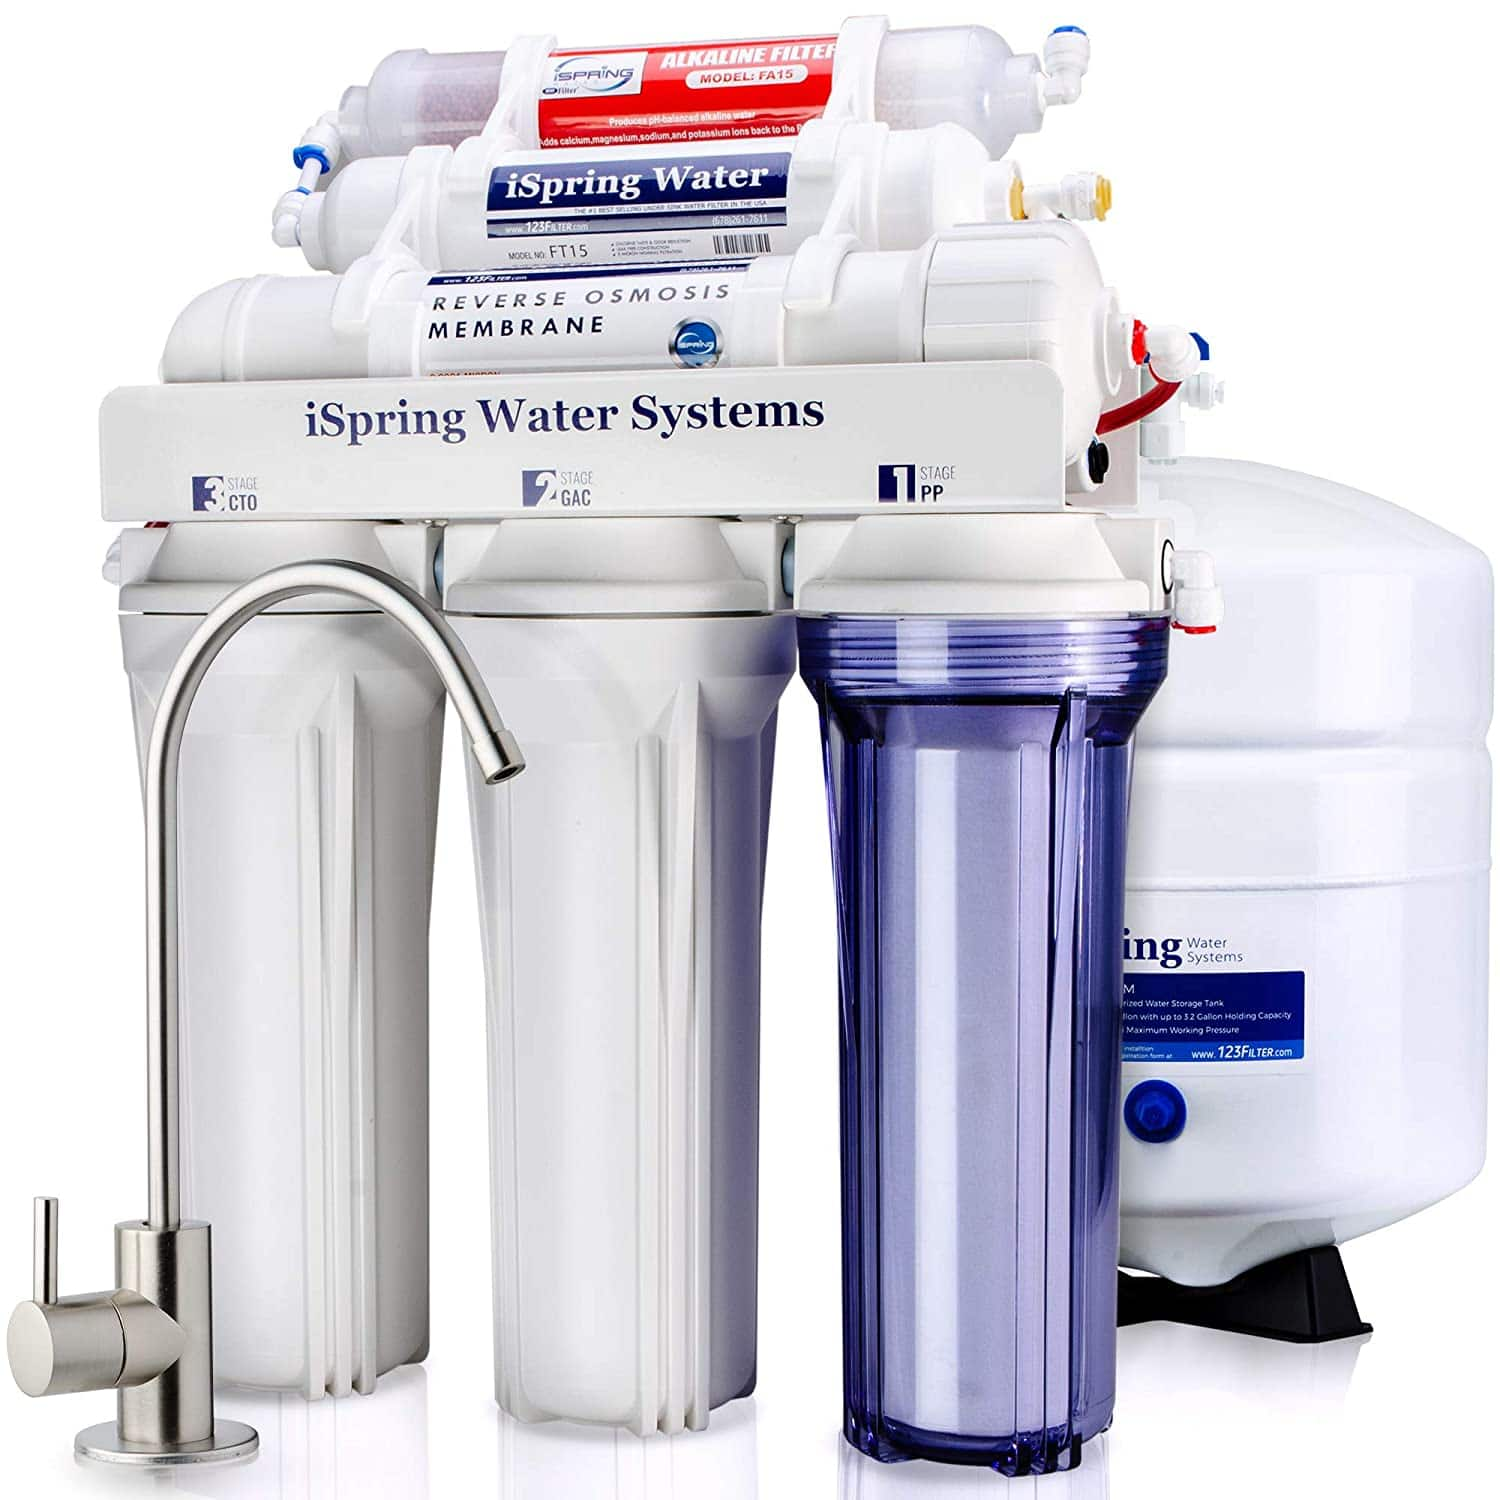 iSpring RCC7AK 6-Stage Superb Taste High Capacity Under Under Sink Reverse Osmosis Drinking Water Filter System with Alkaline Remineralization - Natural pH, White $164.35